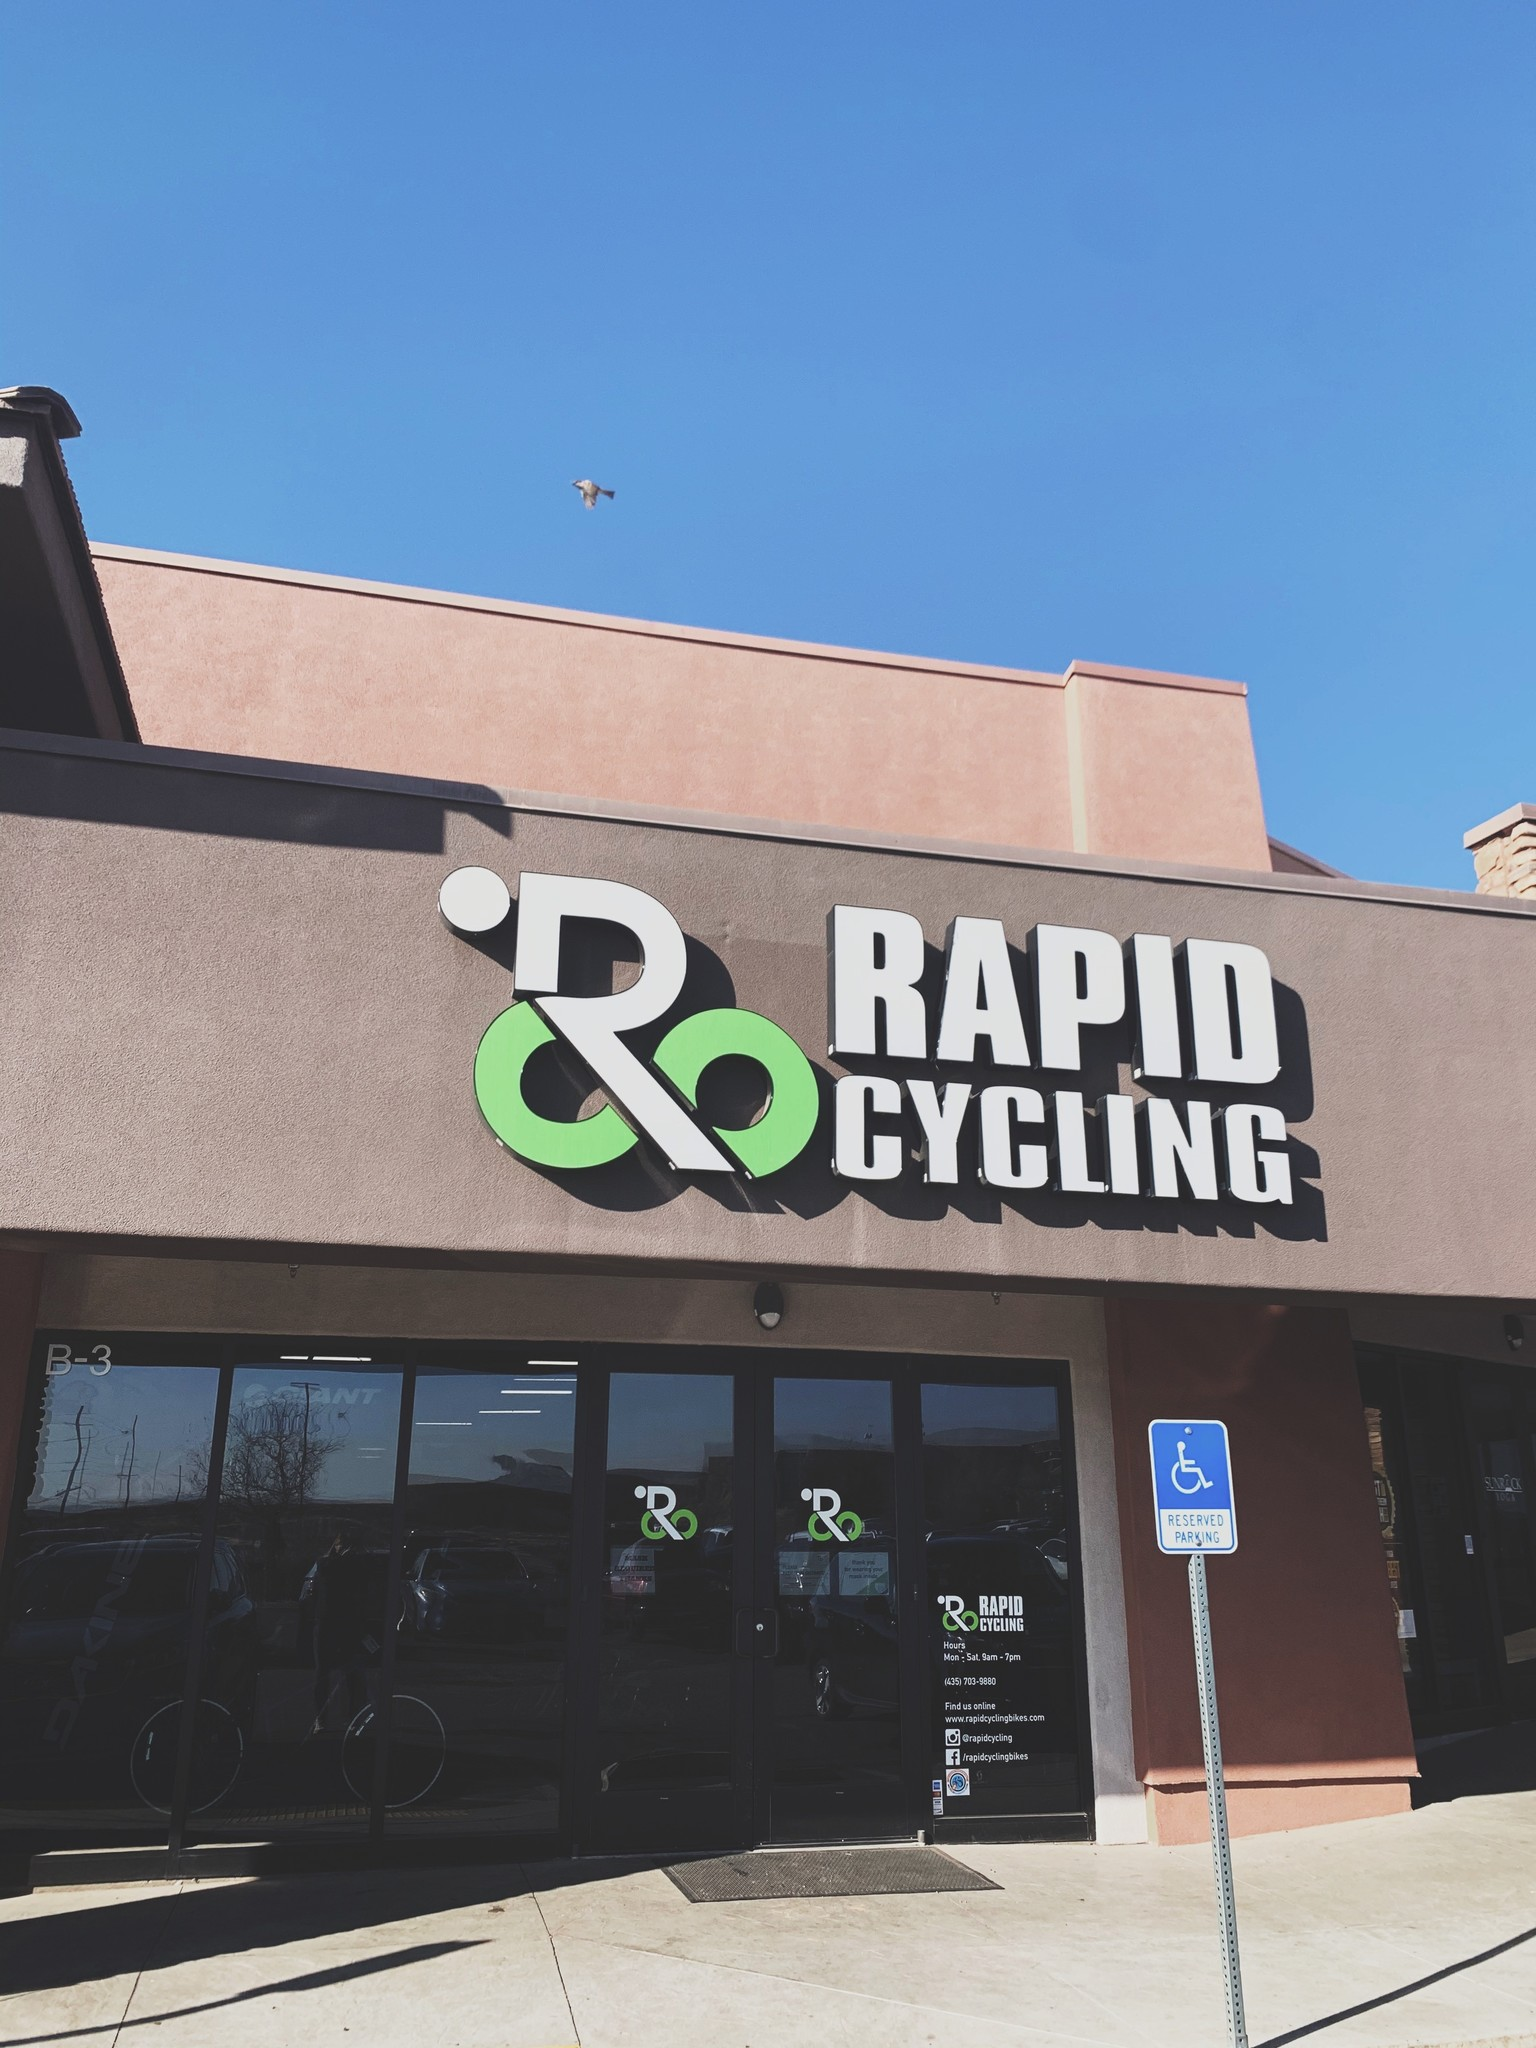 Update on Rapid Cycling at Dino Crossing